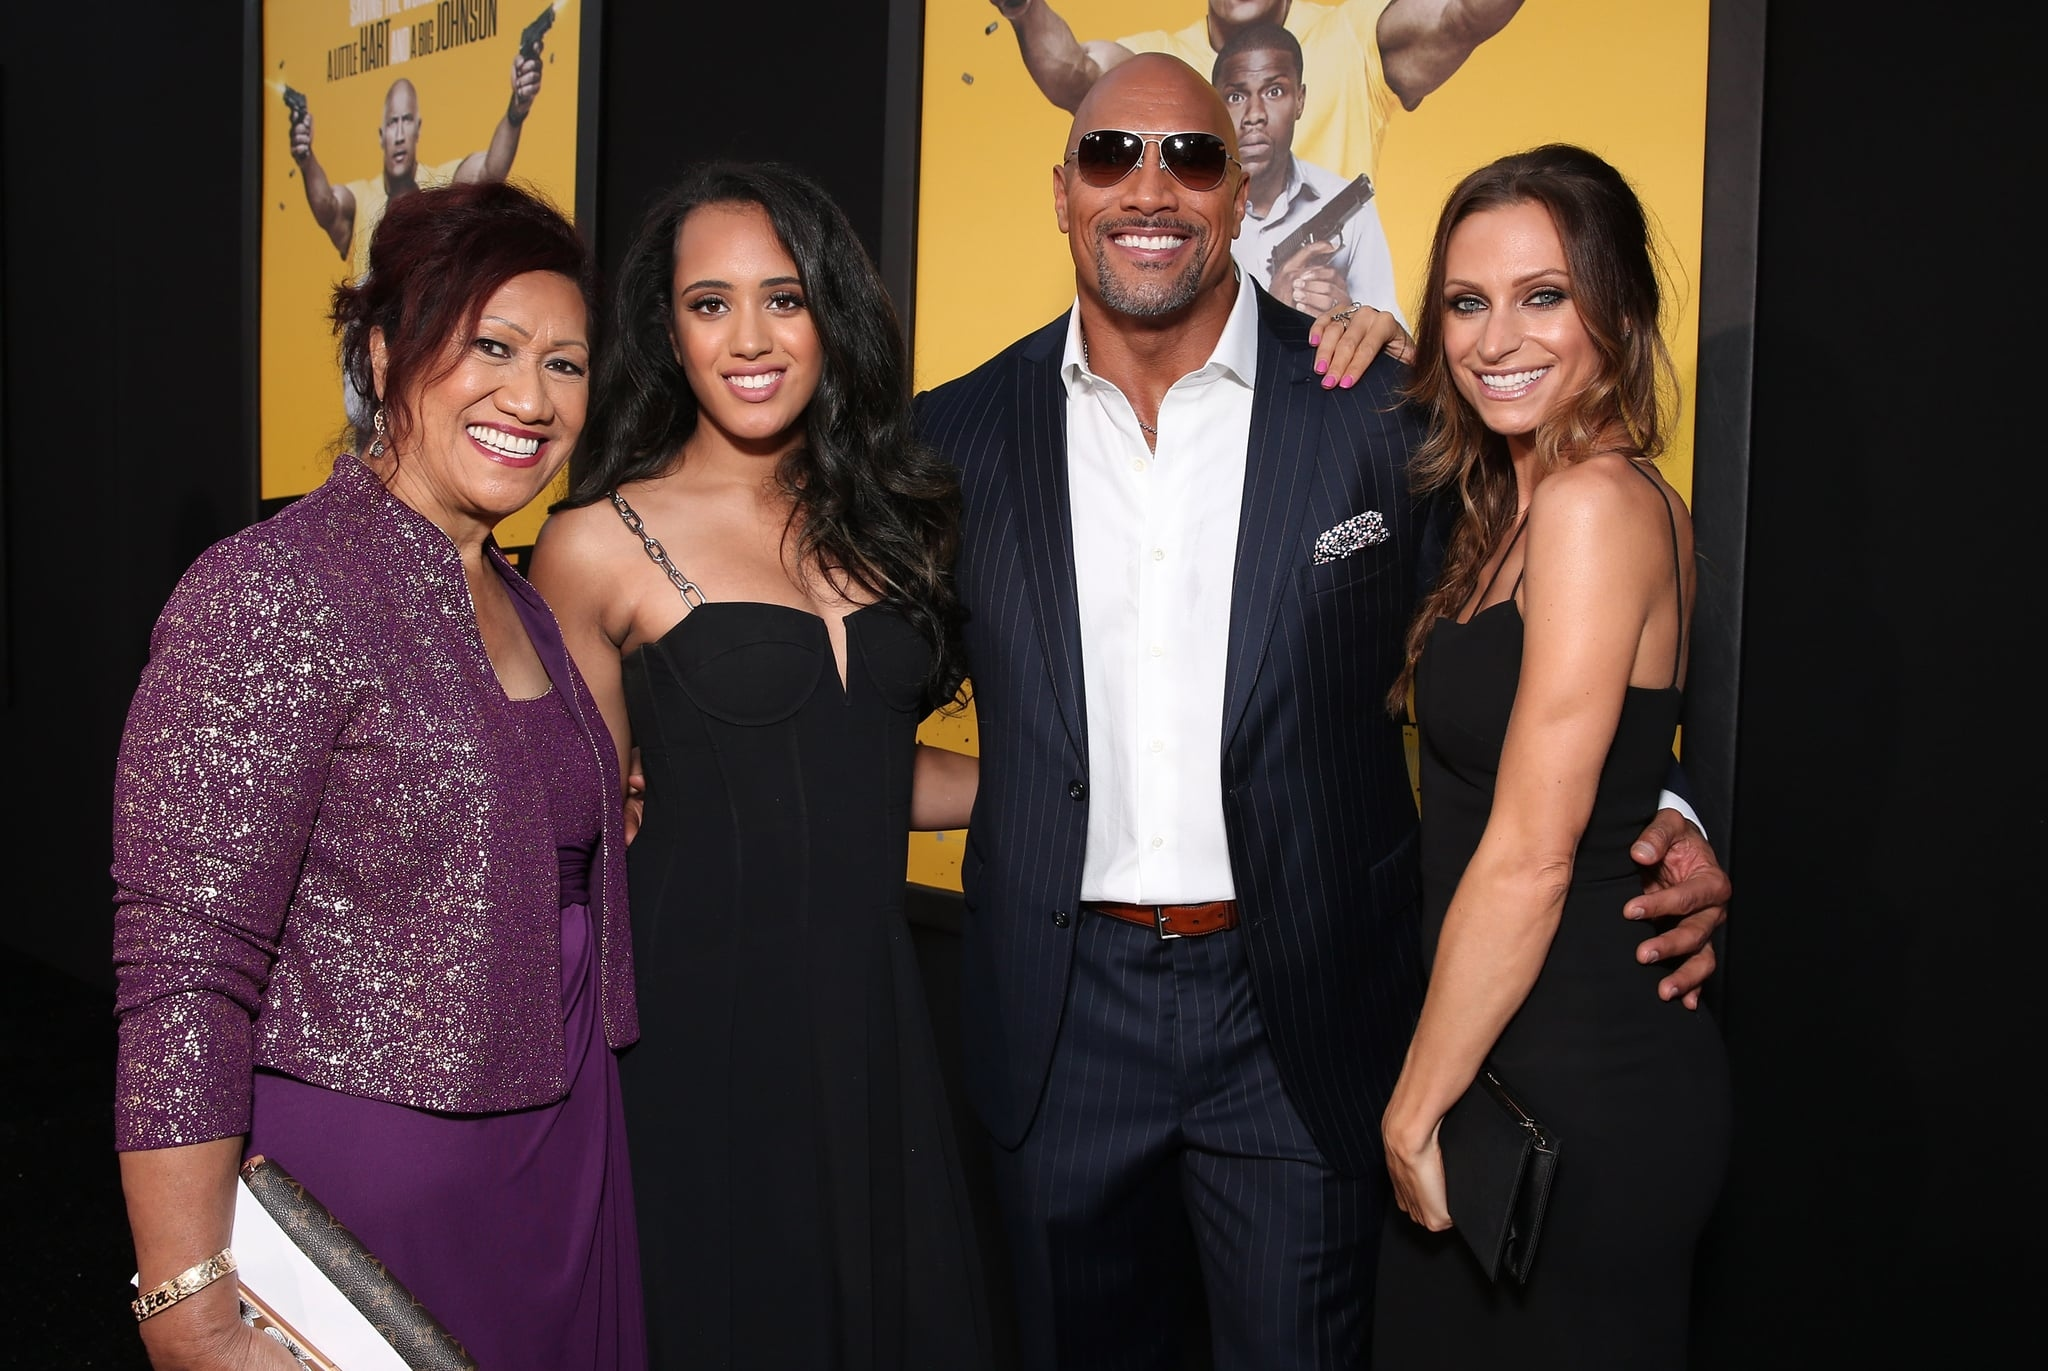 The Rock Dwayne Johnson reveals he and family recovered from Coronavirus!